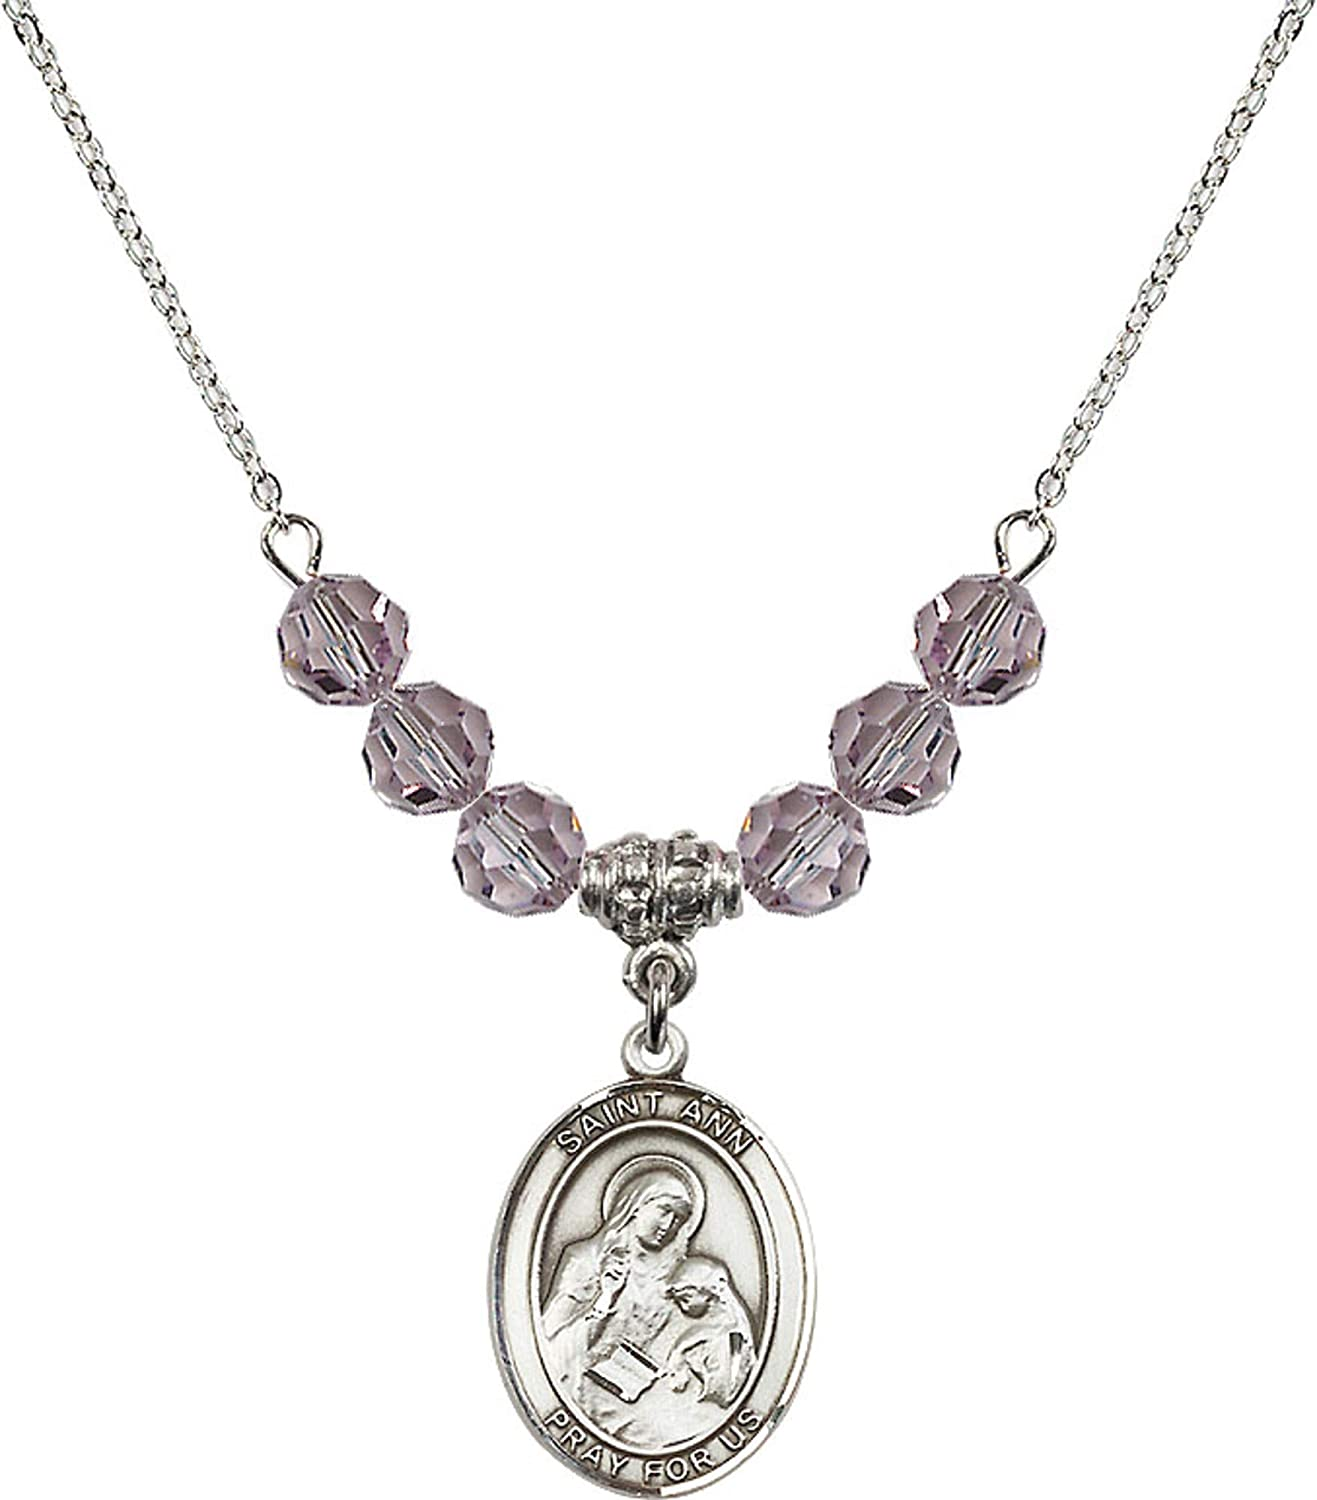 Bonyak Jewelry 18 Inch Rhodium Plated Necklace w// 6mm Light Purple February Birth Month Stone Beads and Saint Ann Charm